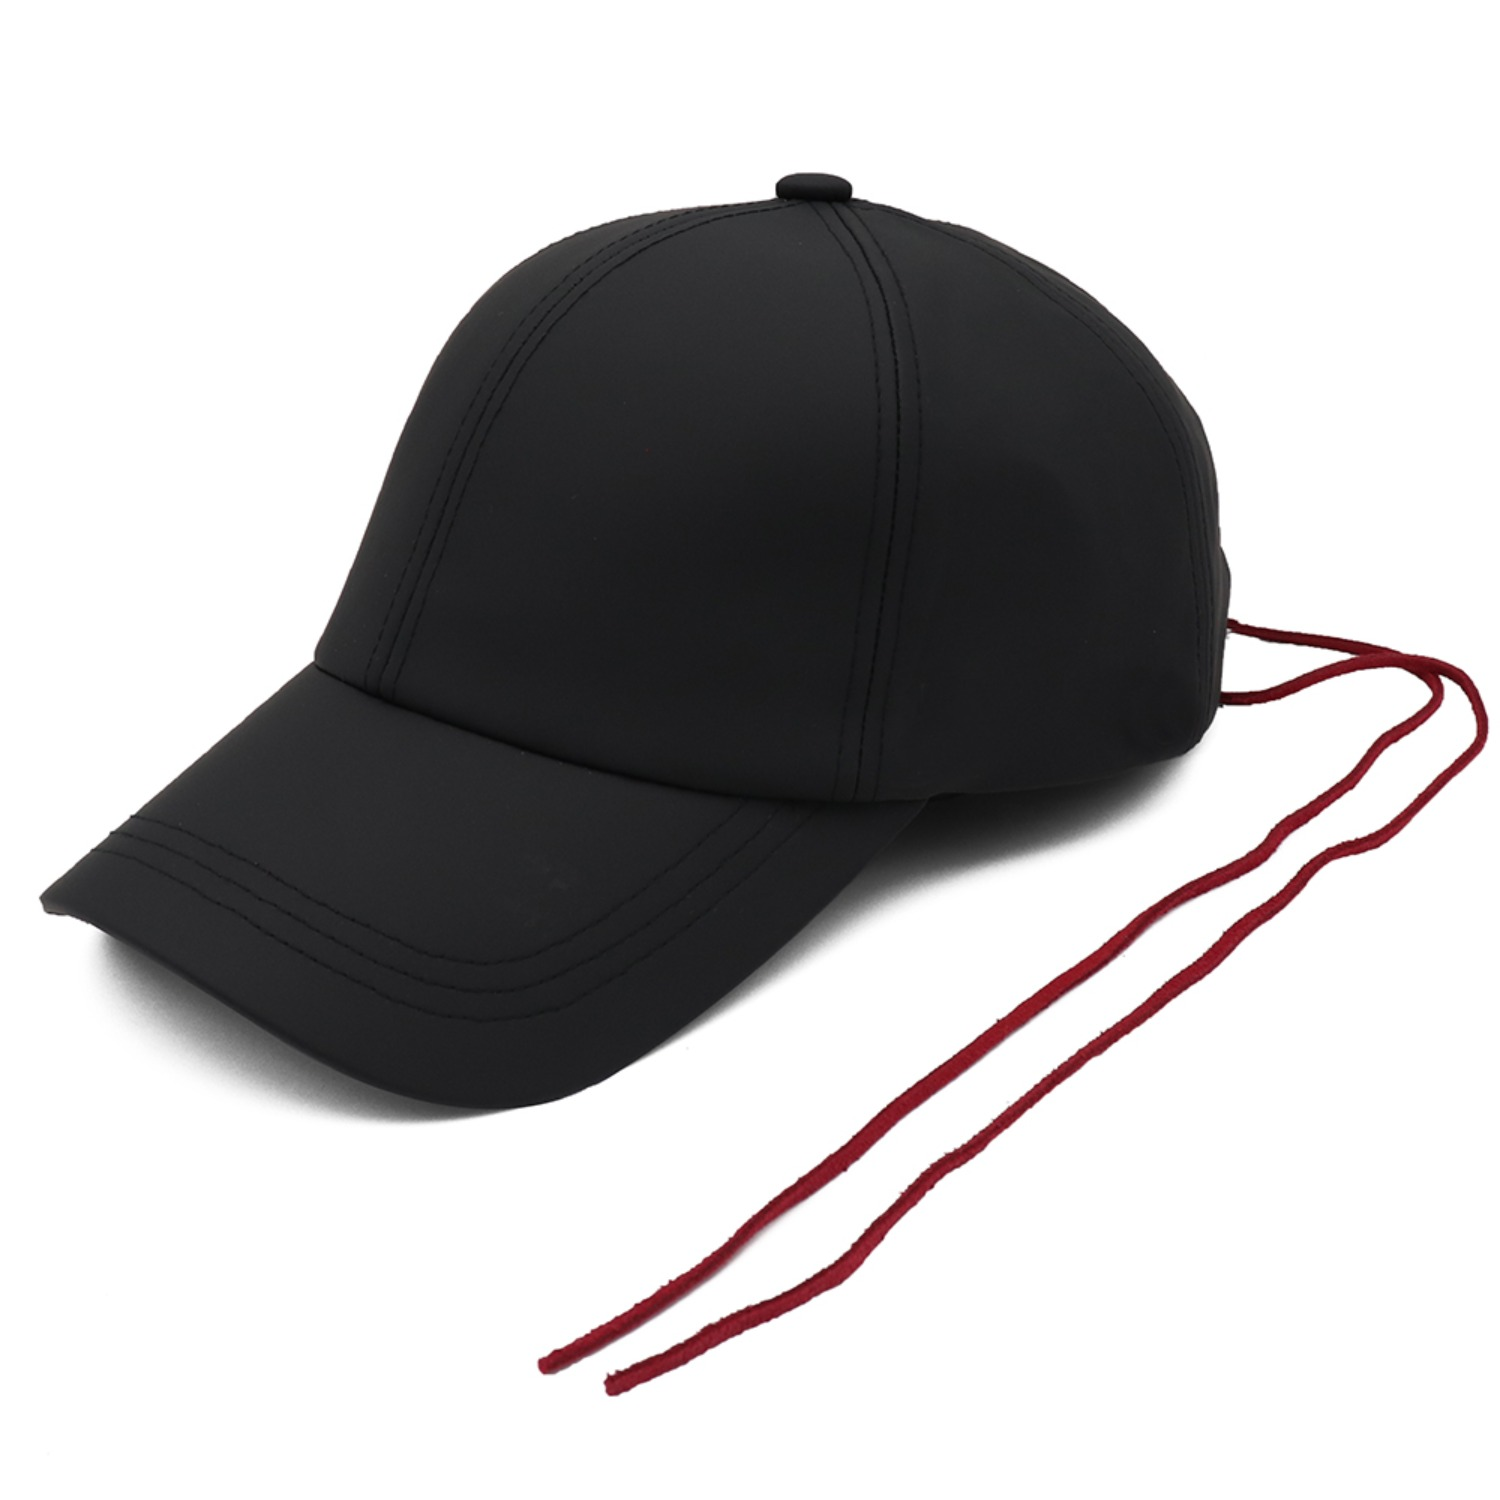 Stopper Dust Black(red string)